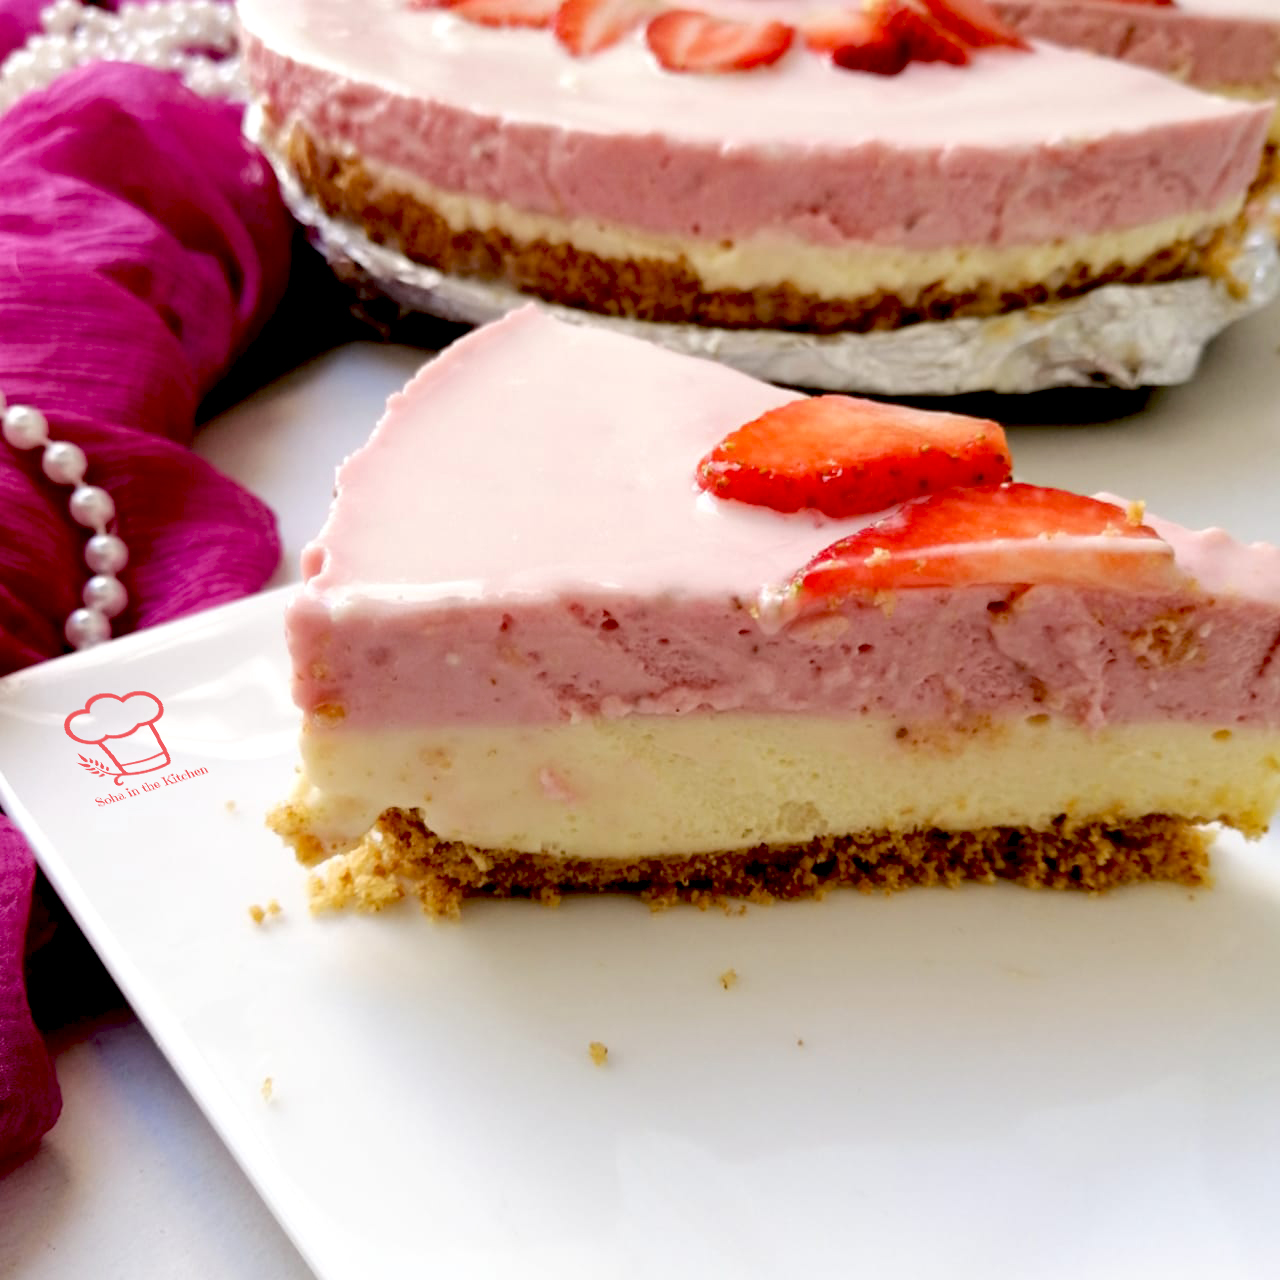 No-Bake White Chocolate and Strawberry Mousse Cake | Soha in the Kitchen